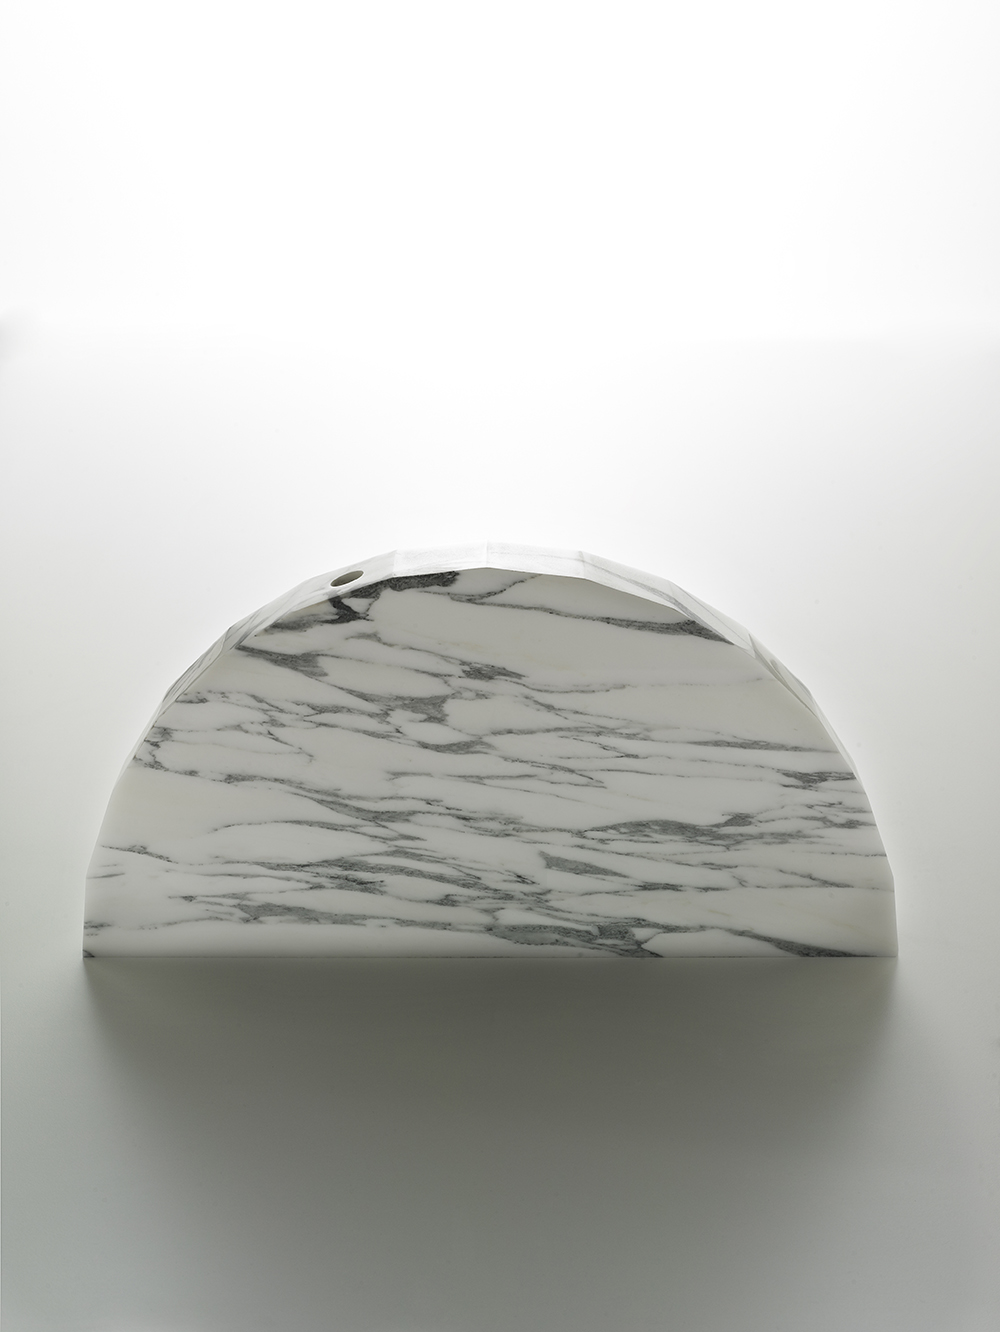 Brooksbank & Collins_Caulis_Arabascatta Marble_3